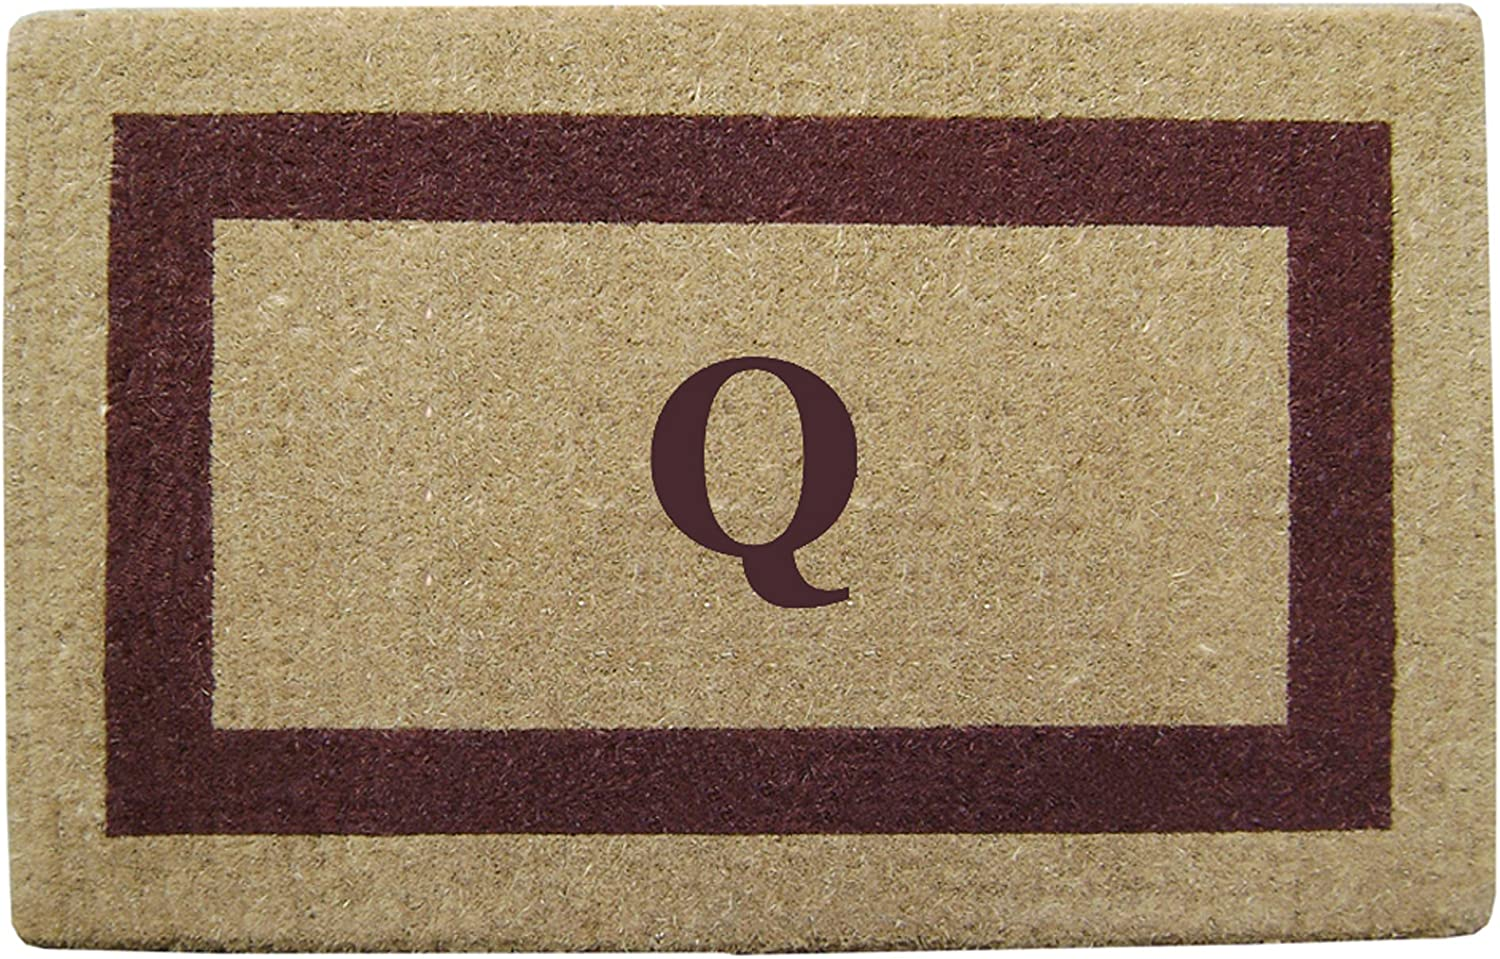 Heavy Duty 38  x 60  Coco Mat Brown Single Picture Frame, Monogrammed Q